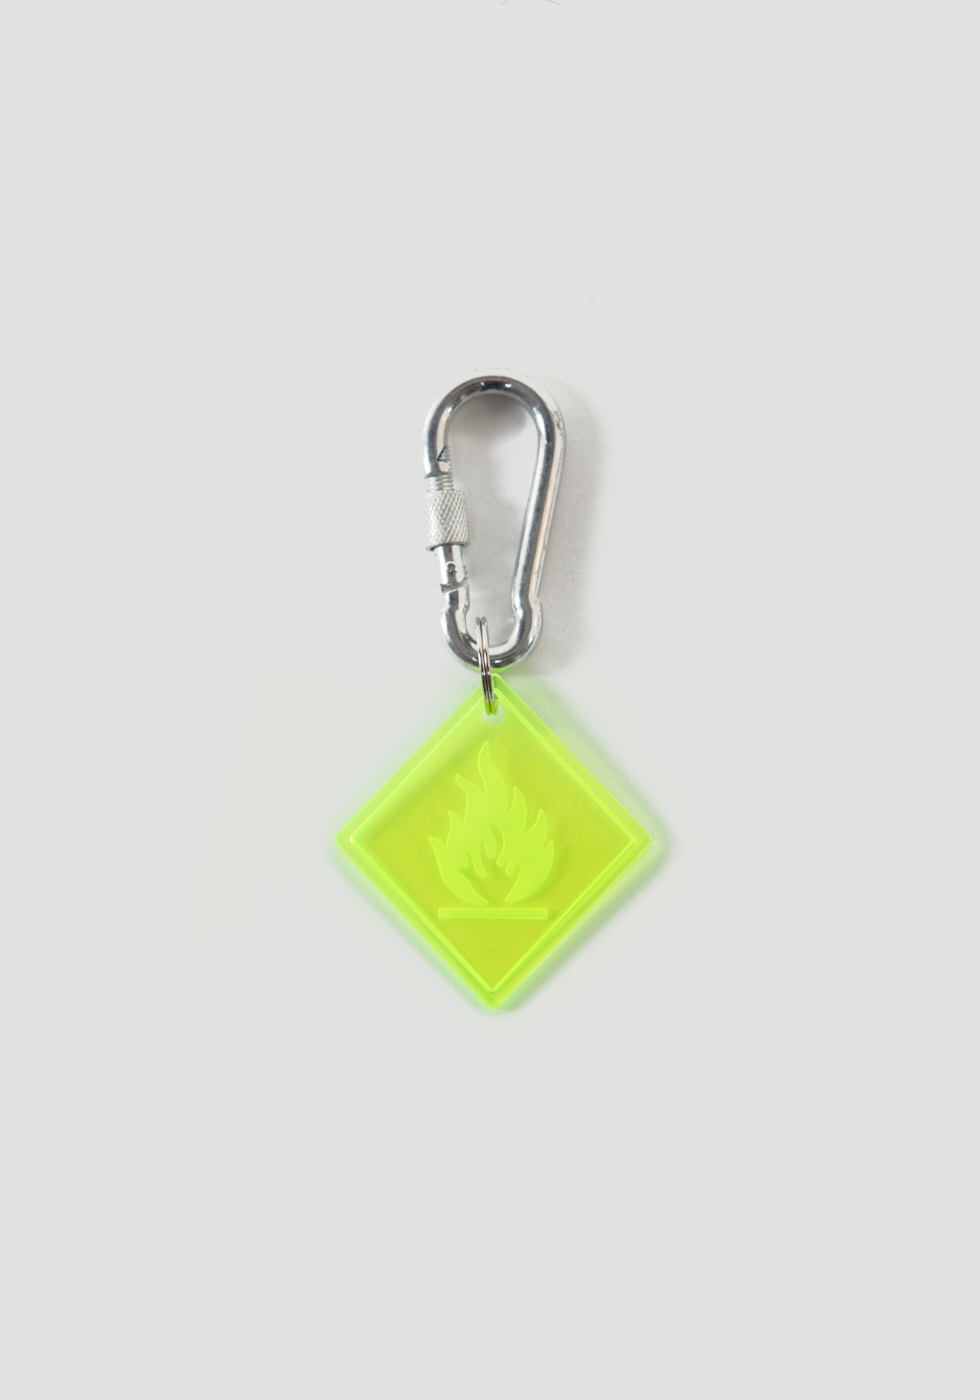 Highly Flammable Luggage Tag